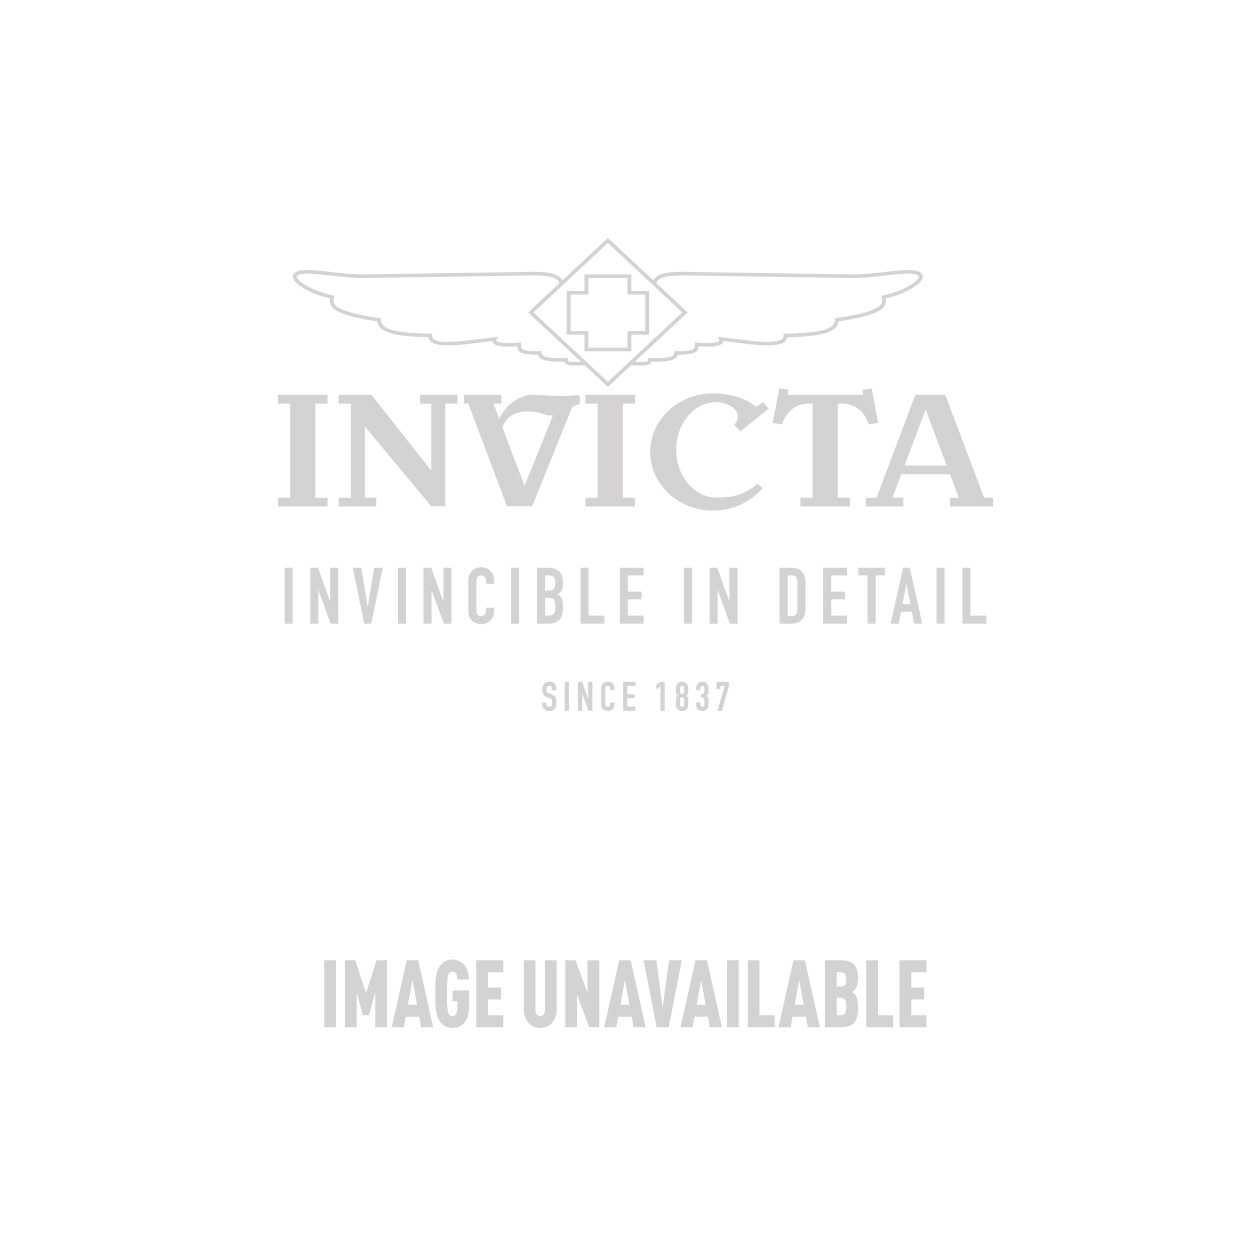 Invicta Angel Swiss Movement Quartz Watch - Stainless Steel case Stainless Steel band - Model 0461